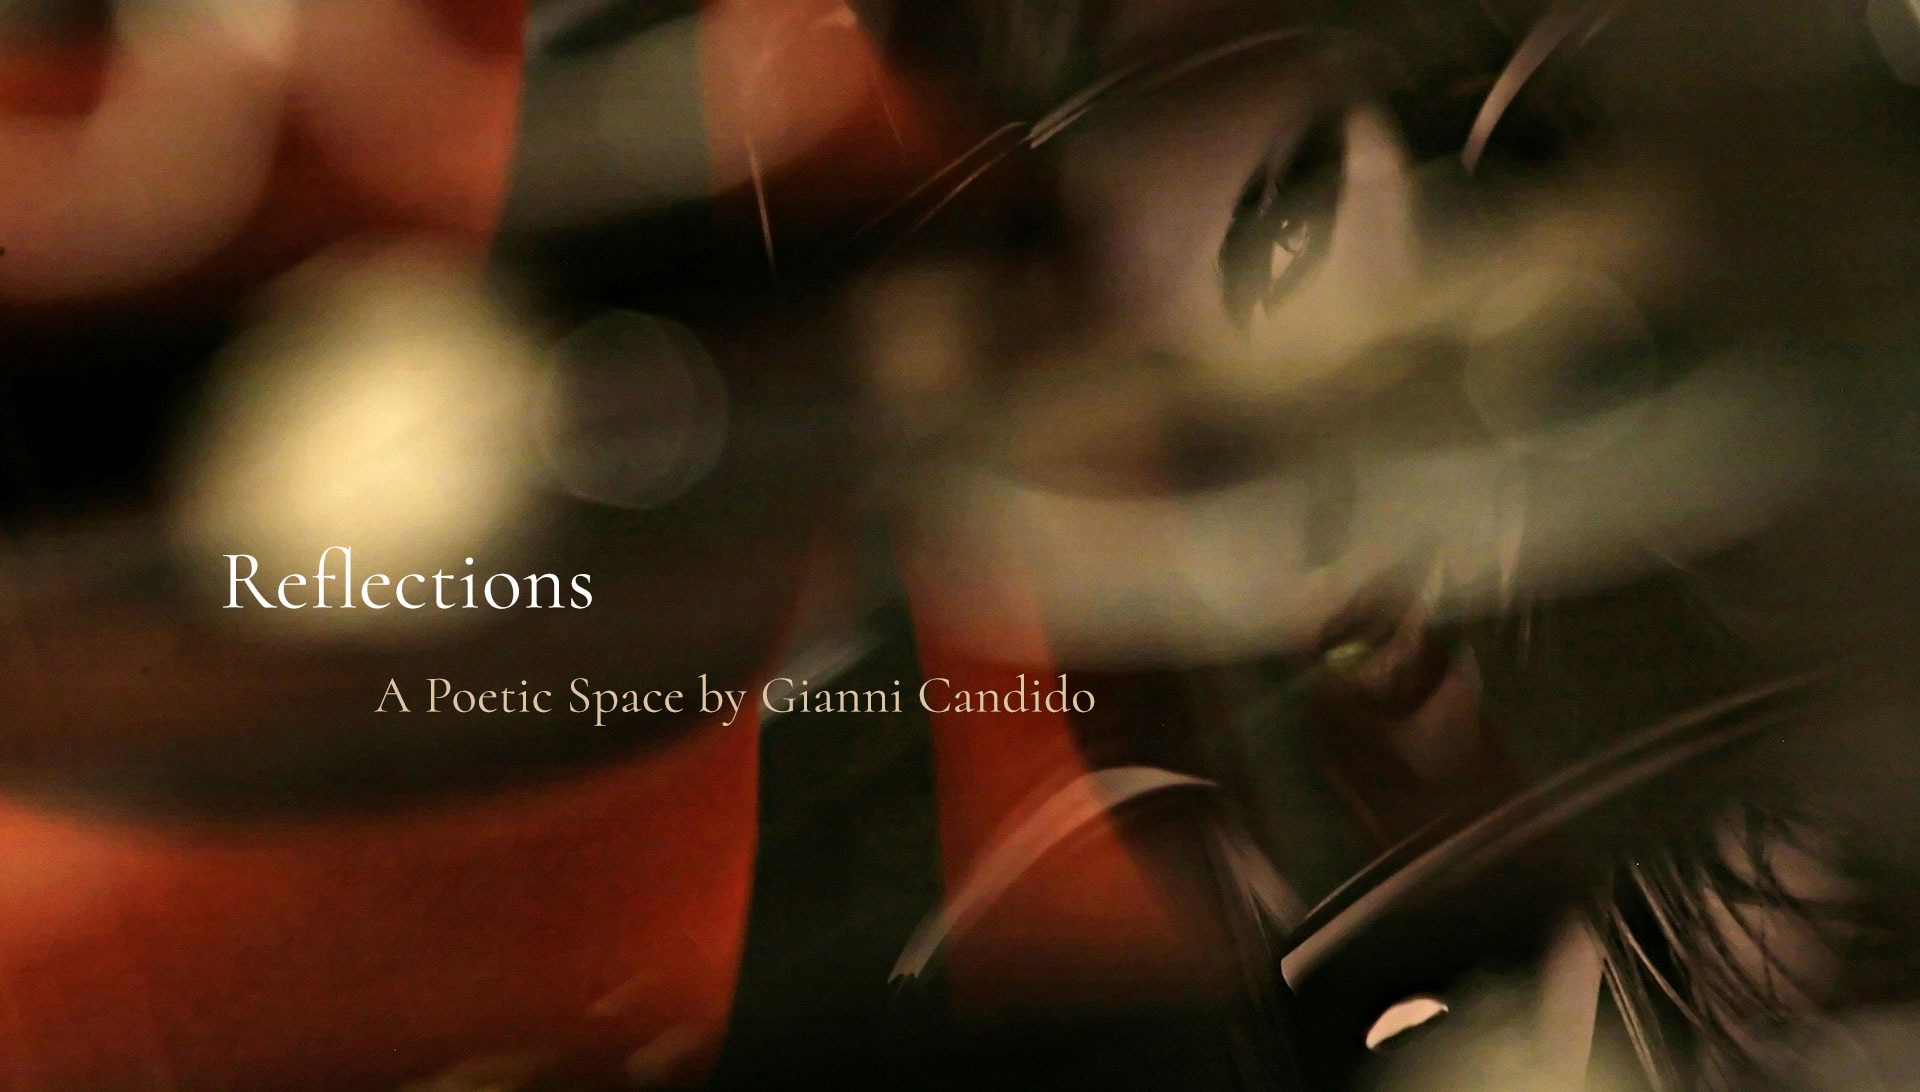 Reflections - A Poetic Space by Gianni Candido